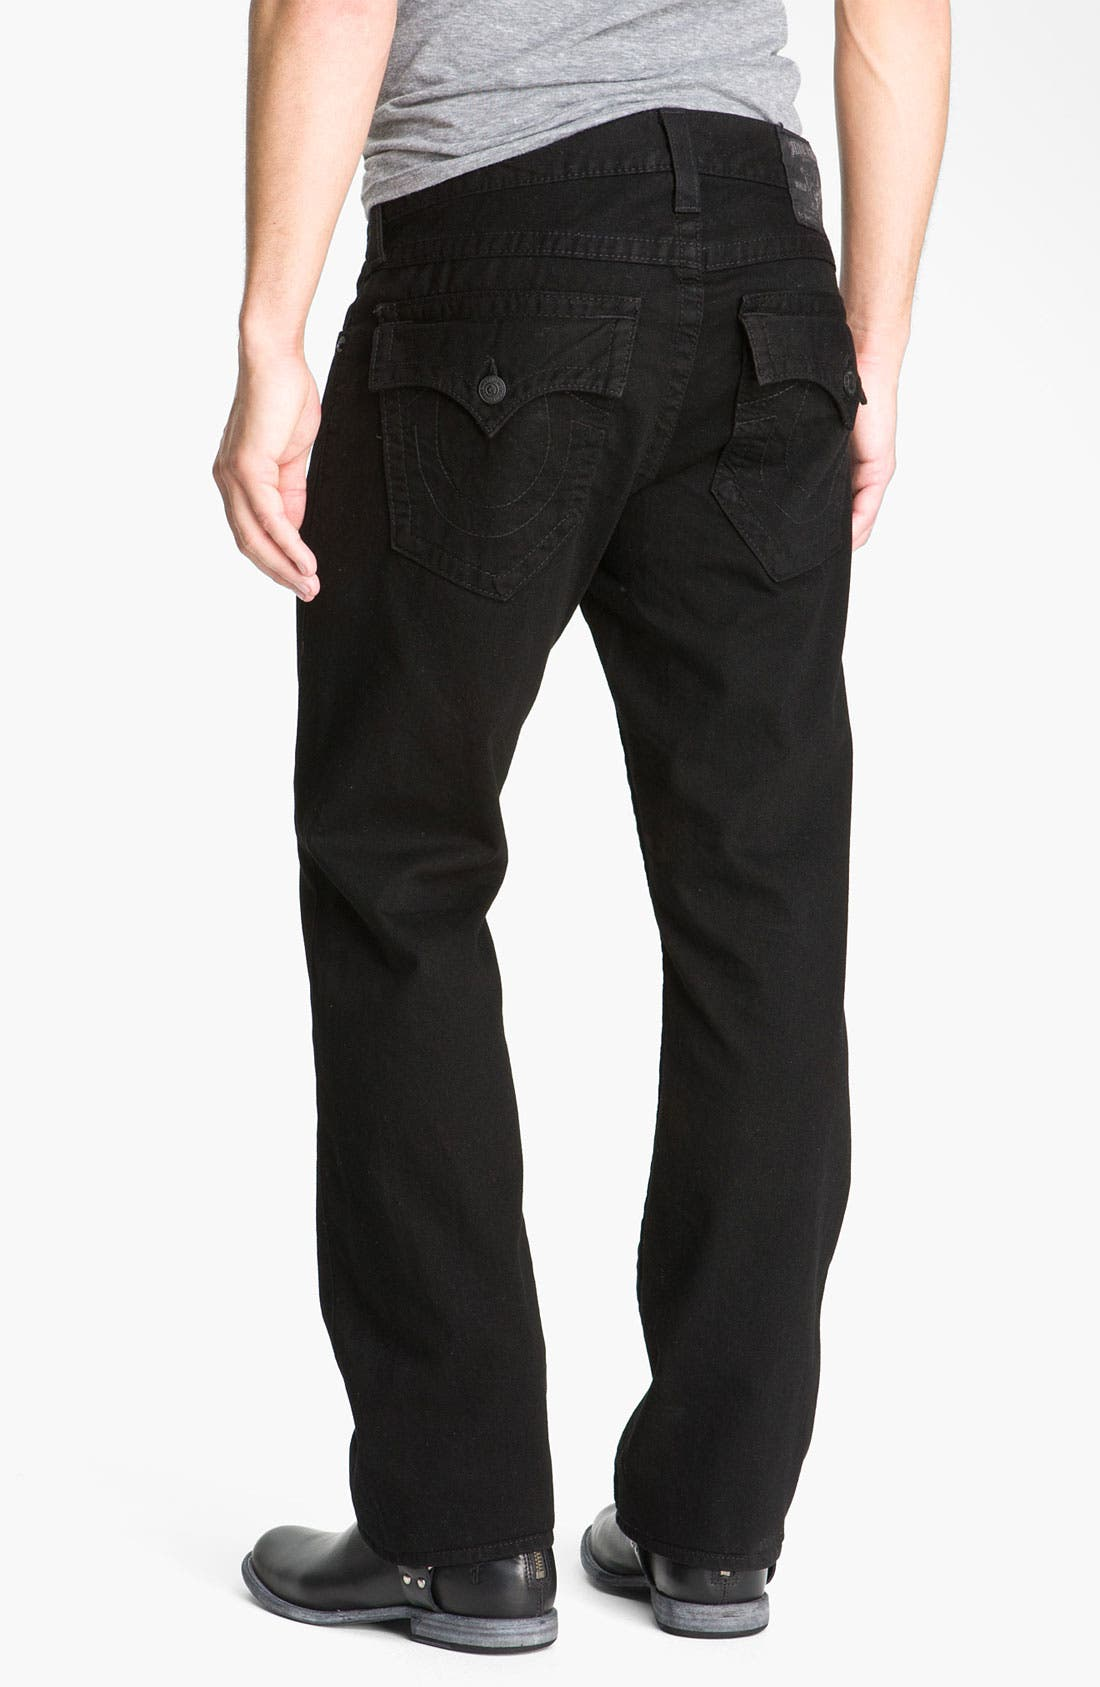 Main Image - True Religion Brand Jeans 'Ricky' Relaxed Fit Jeans (Superfly)